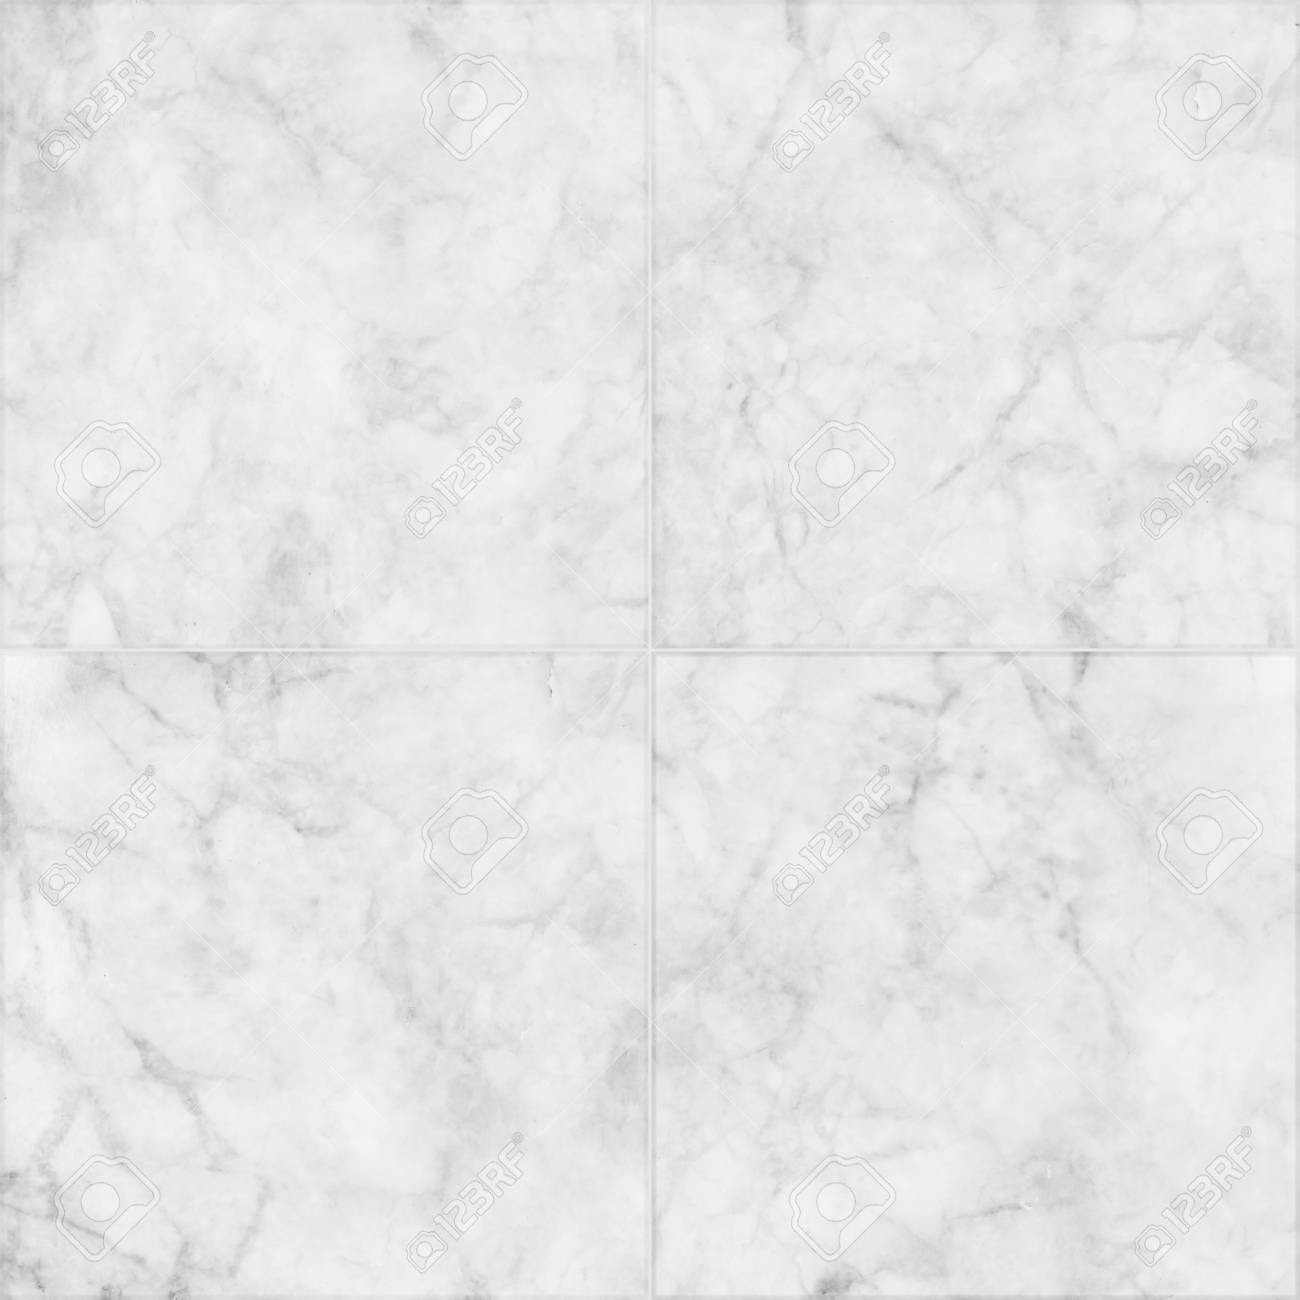 White Marble Tiles Seamless Flooring Texture, Detailed Structure ...